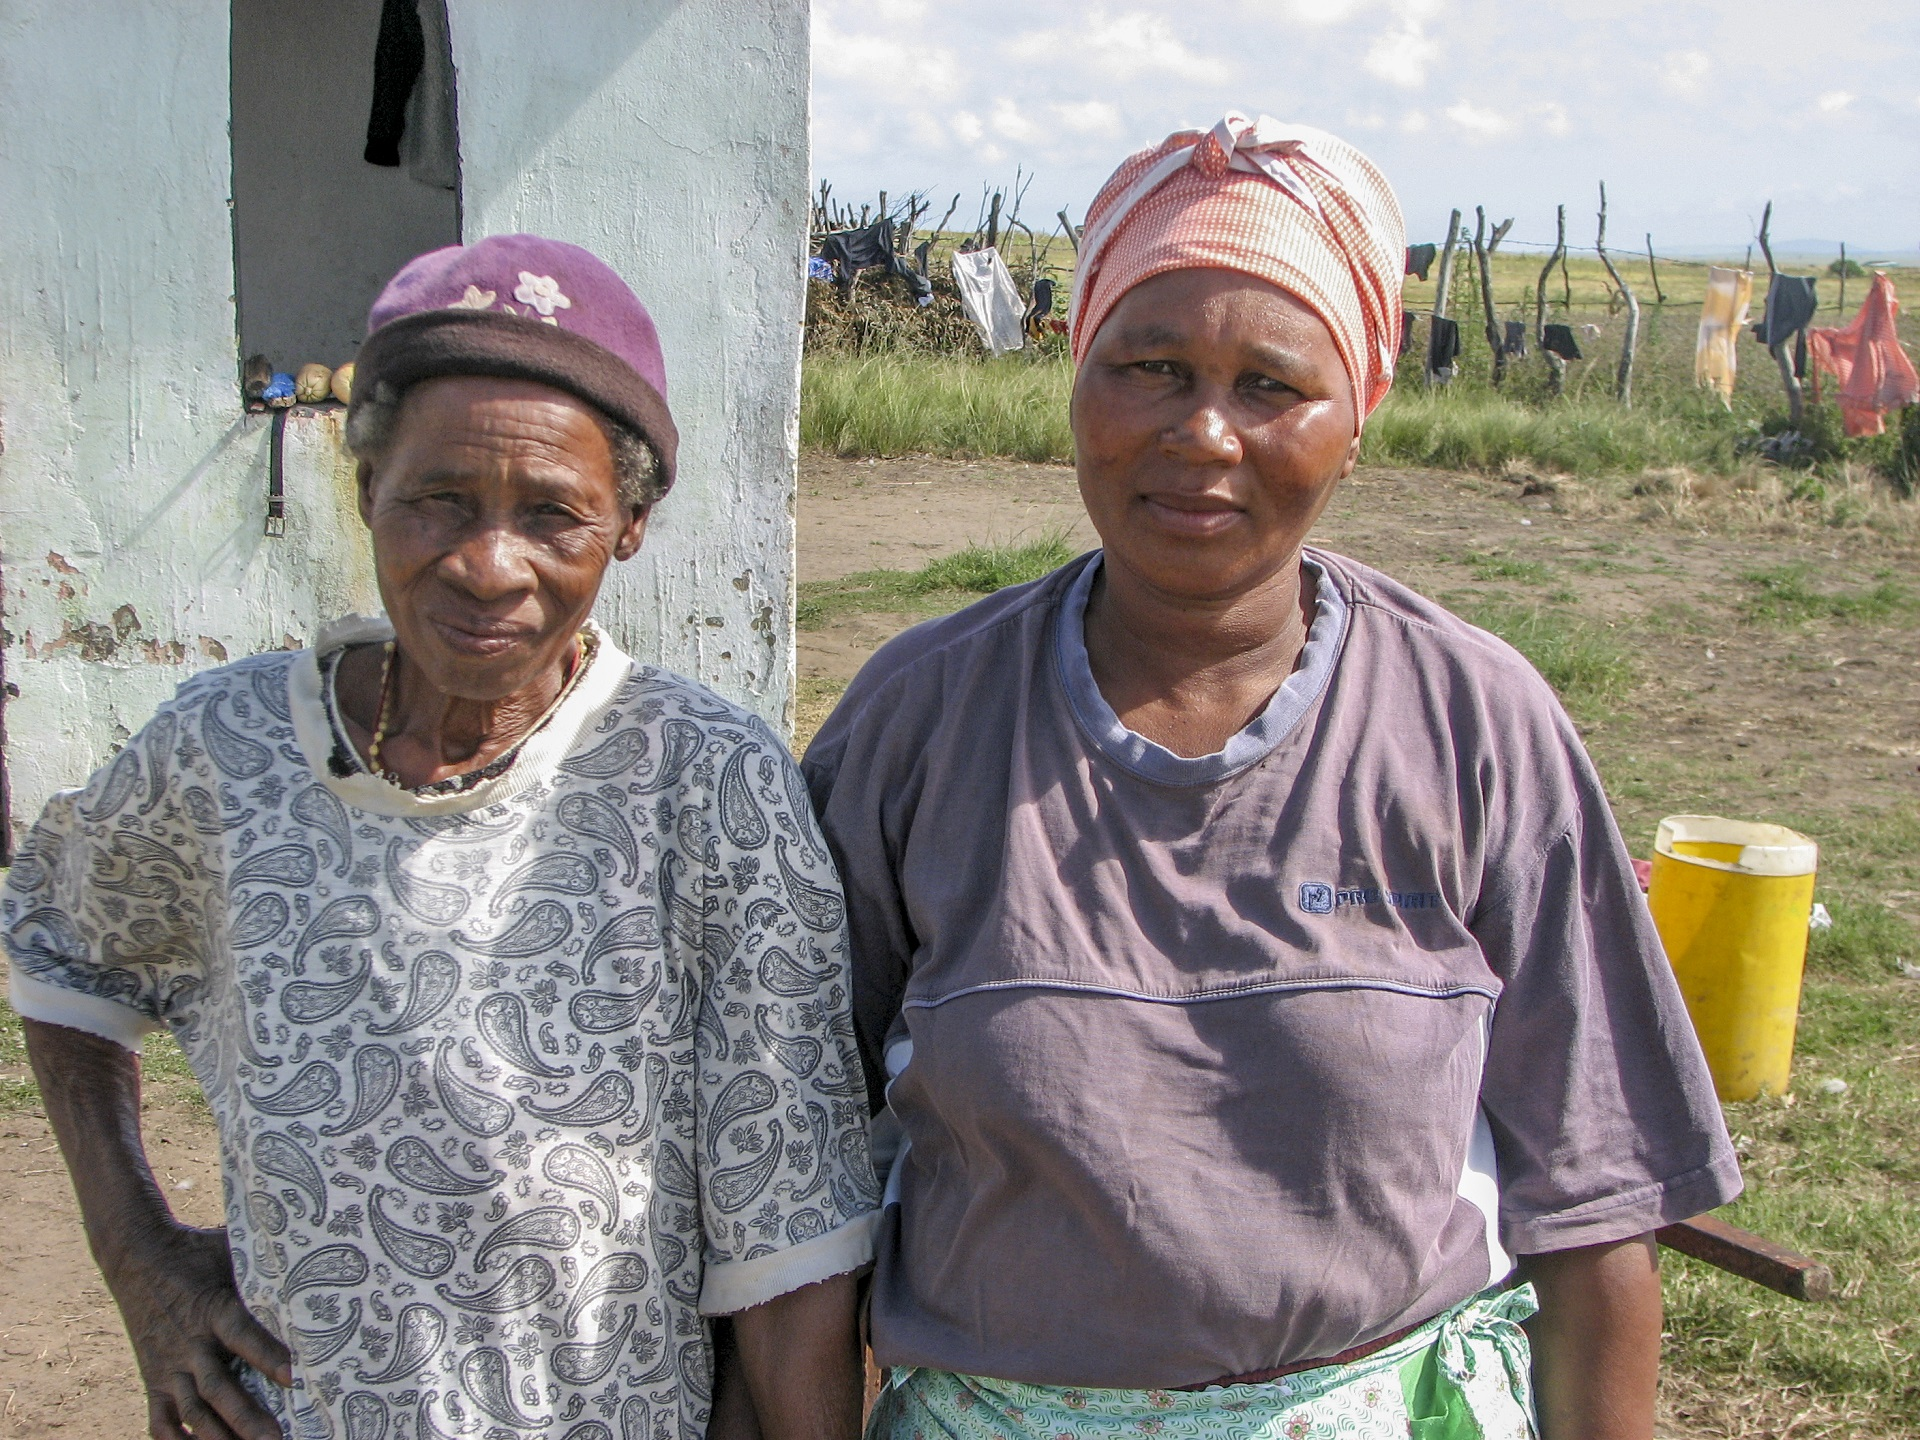 Velani Dukuza and her mother of the amaFrance clan in Pondoland